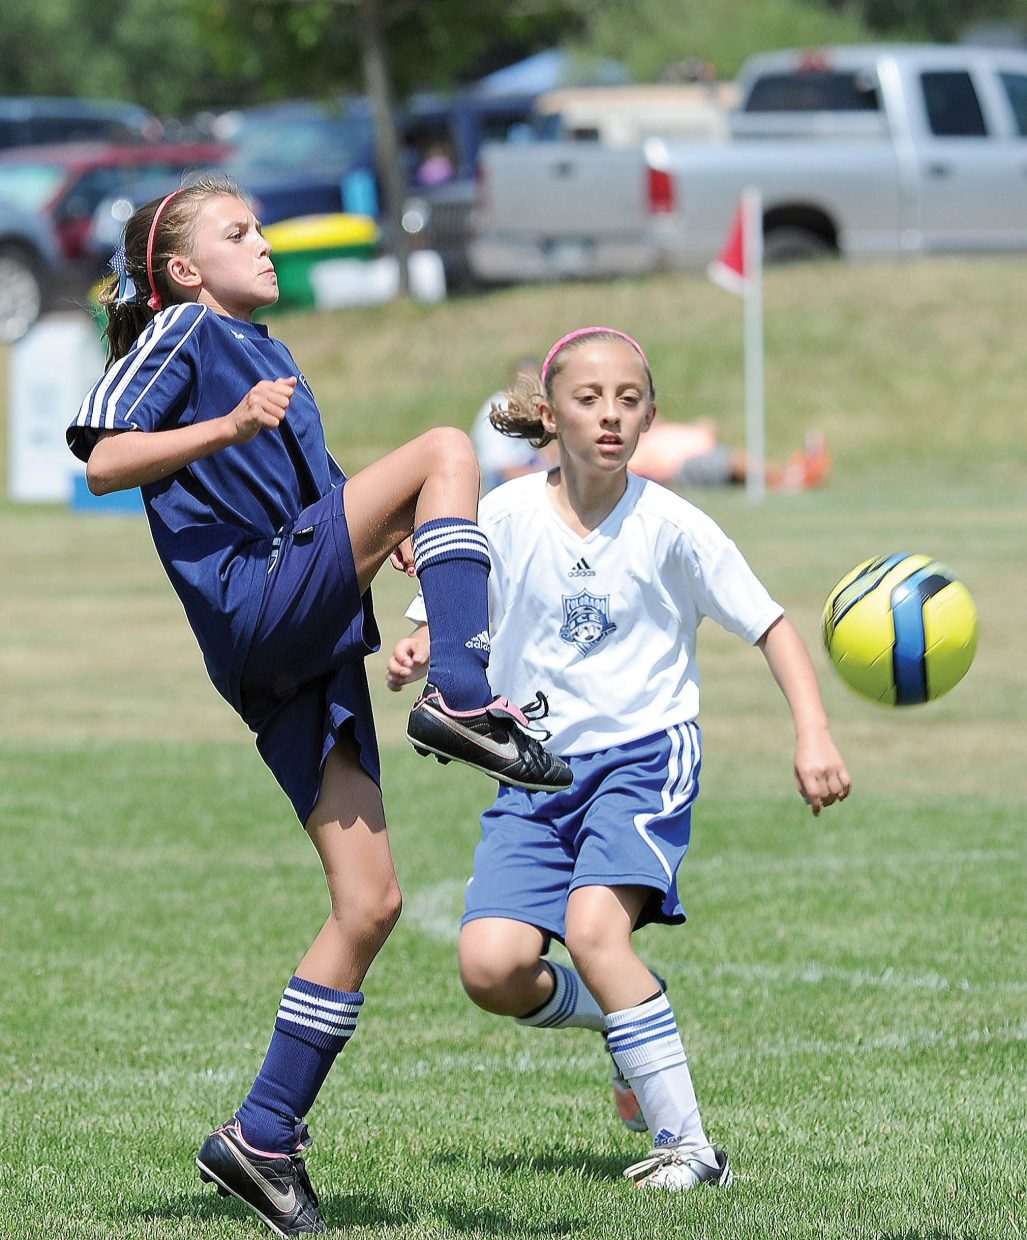 Steamboat Springs soccer player Maggie Congdon hits the ball out of the air during a 3-0 win against the Black Ice in Saturday's action. The U12 Steamboat Navy girls team won all three pool play games and will face the NTX Reign from Utah at noon today in the bronze division championship at Heritage Park. The boys U12 team will also play for the championship against Forza FC in the silver division. That game begins at 10 a.m. and also is at Heritage Park